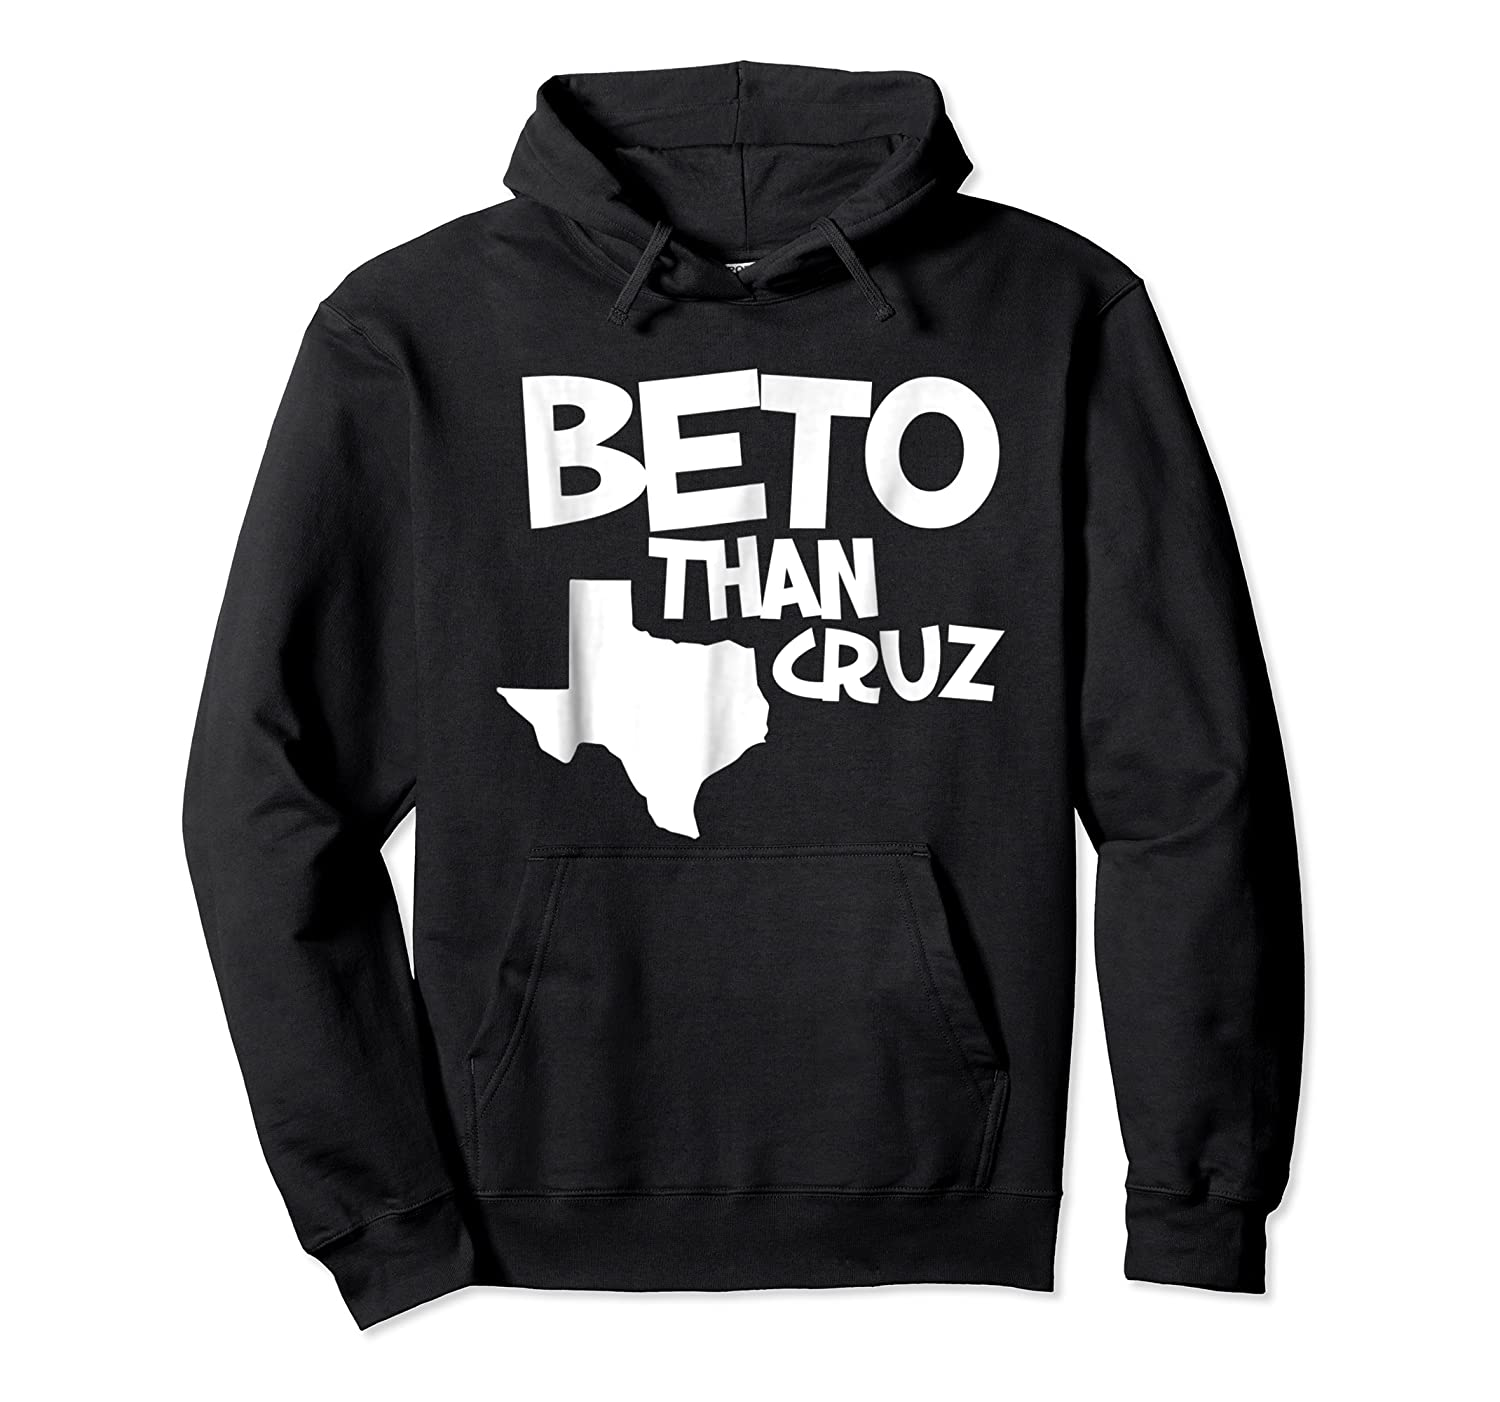 Vote For Beto Loteria Card, Orourke For Texas Senate Shirts Unisex Pullover Hoodie